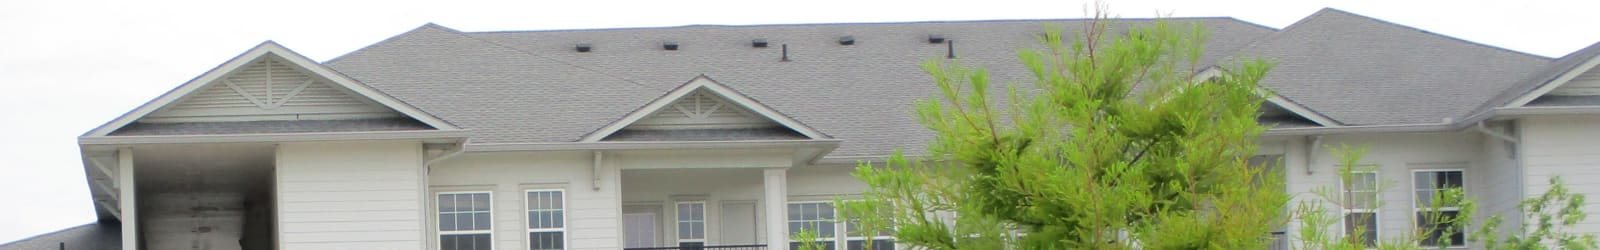 1, 2 & 3 bedrooms offered at apartments in Broussard